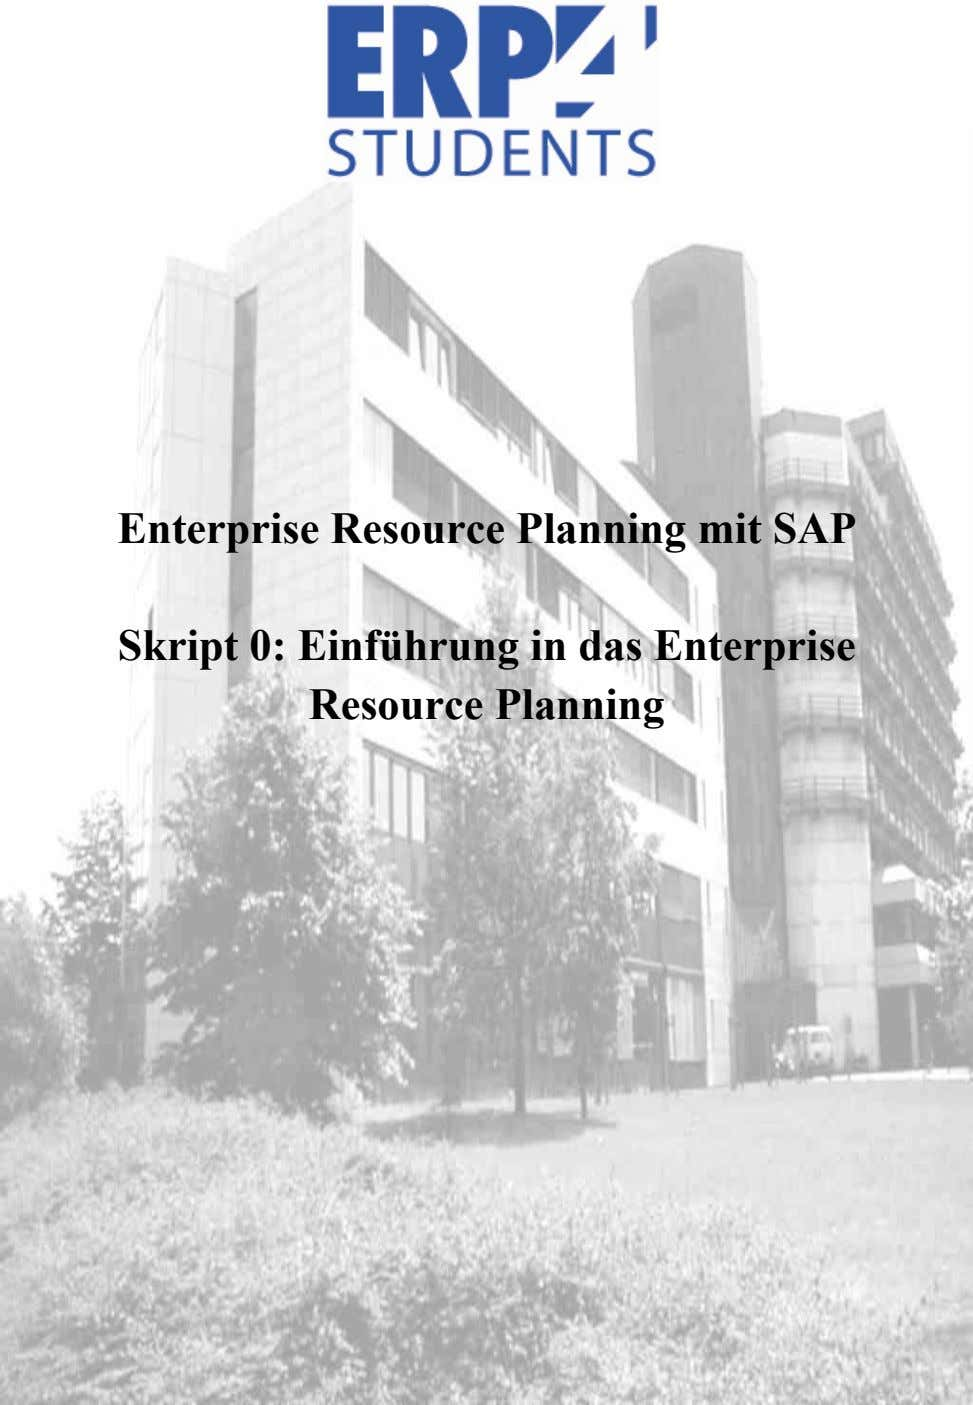 Enterprise Resource Planning mit SAP Skript 0: Einführung in das Enterprise Resource Planning